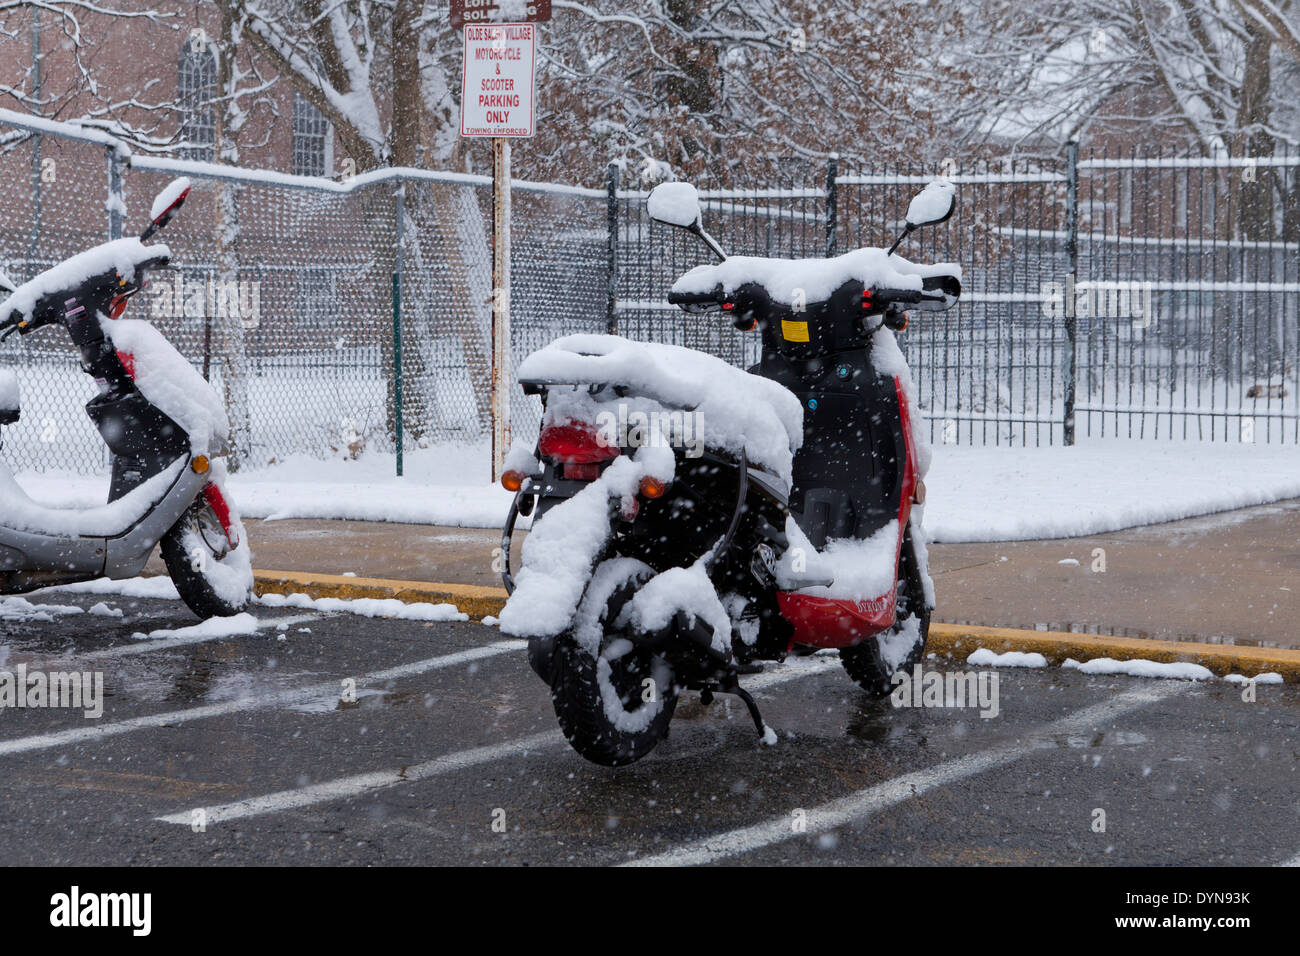 Snow covered parked moped - Stock Image